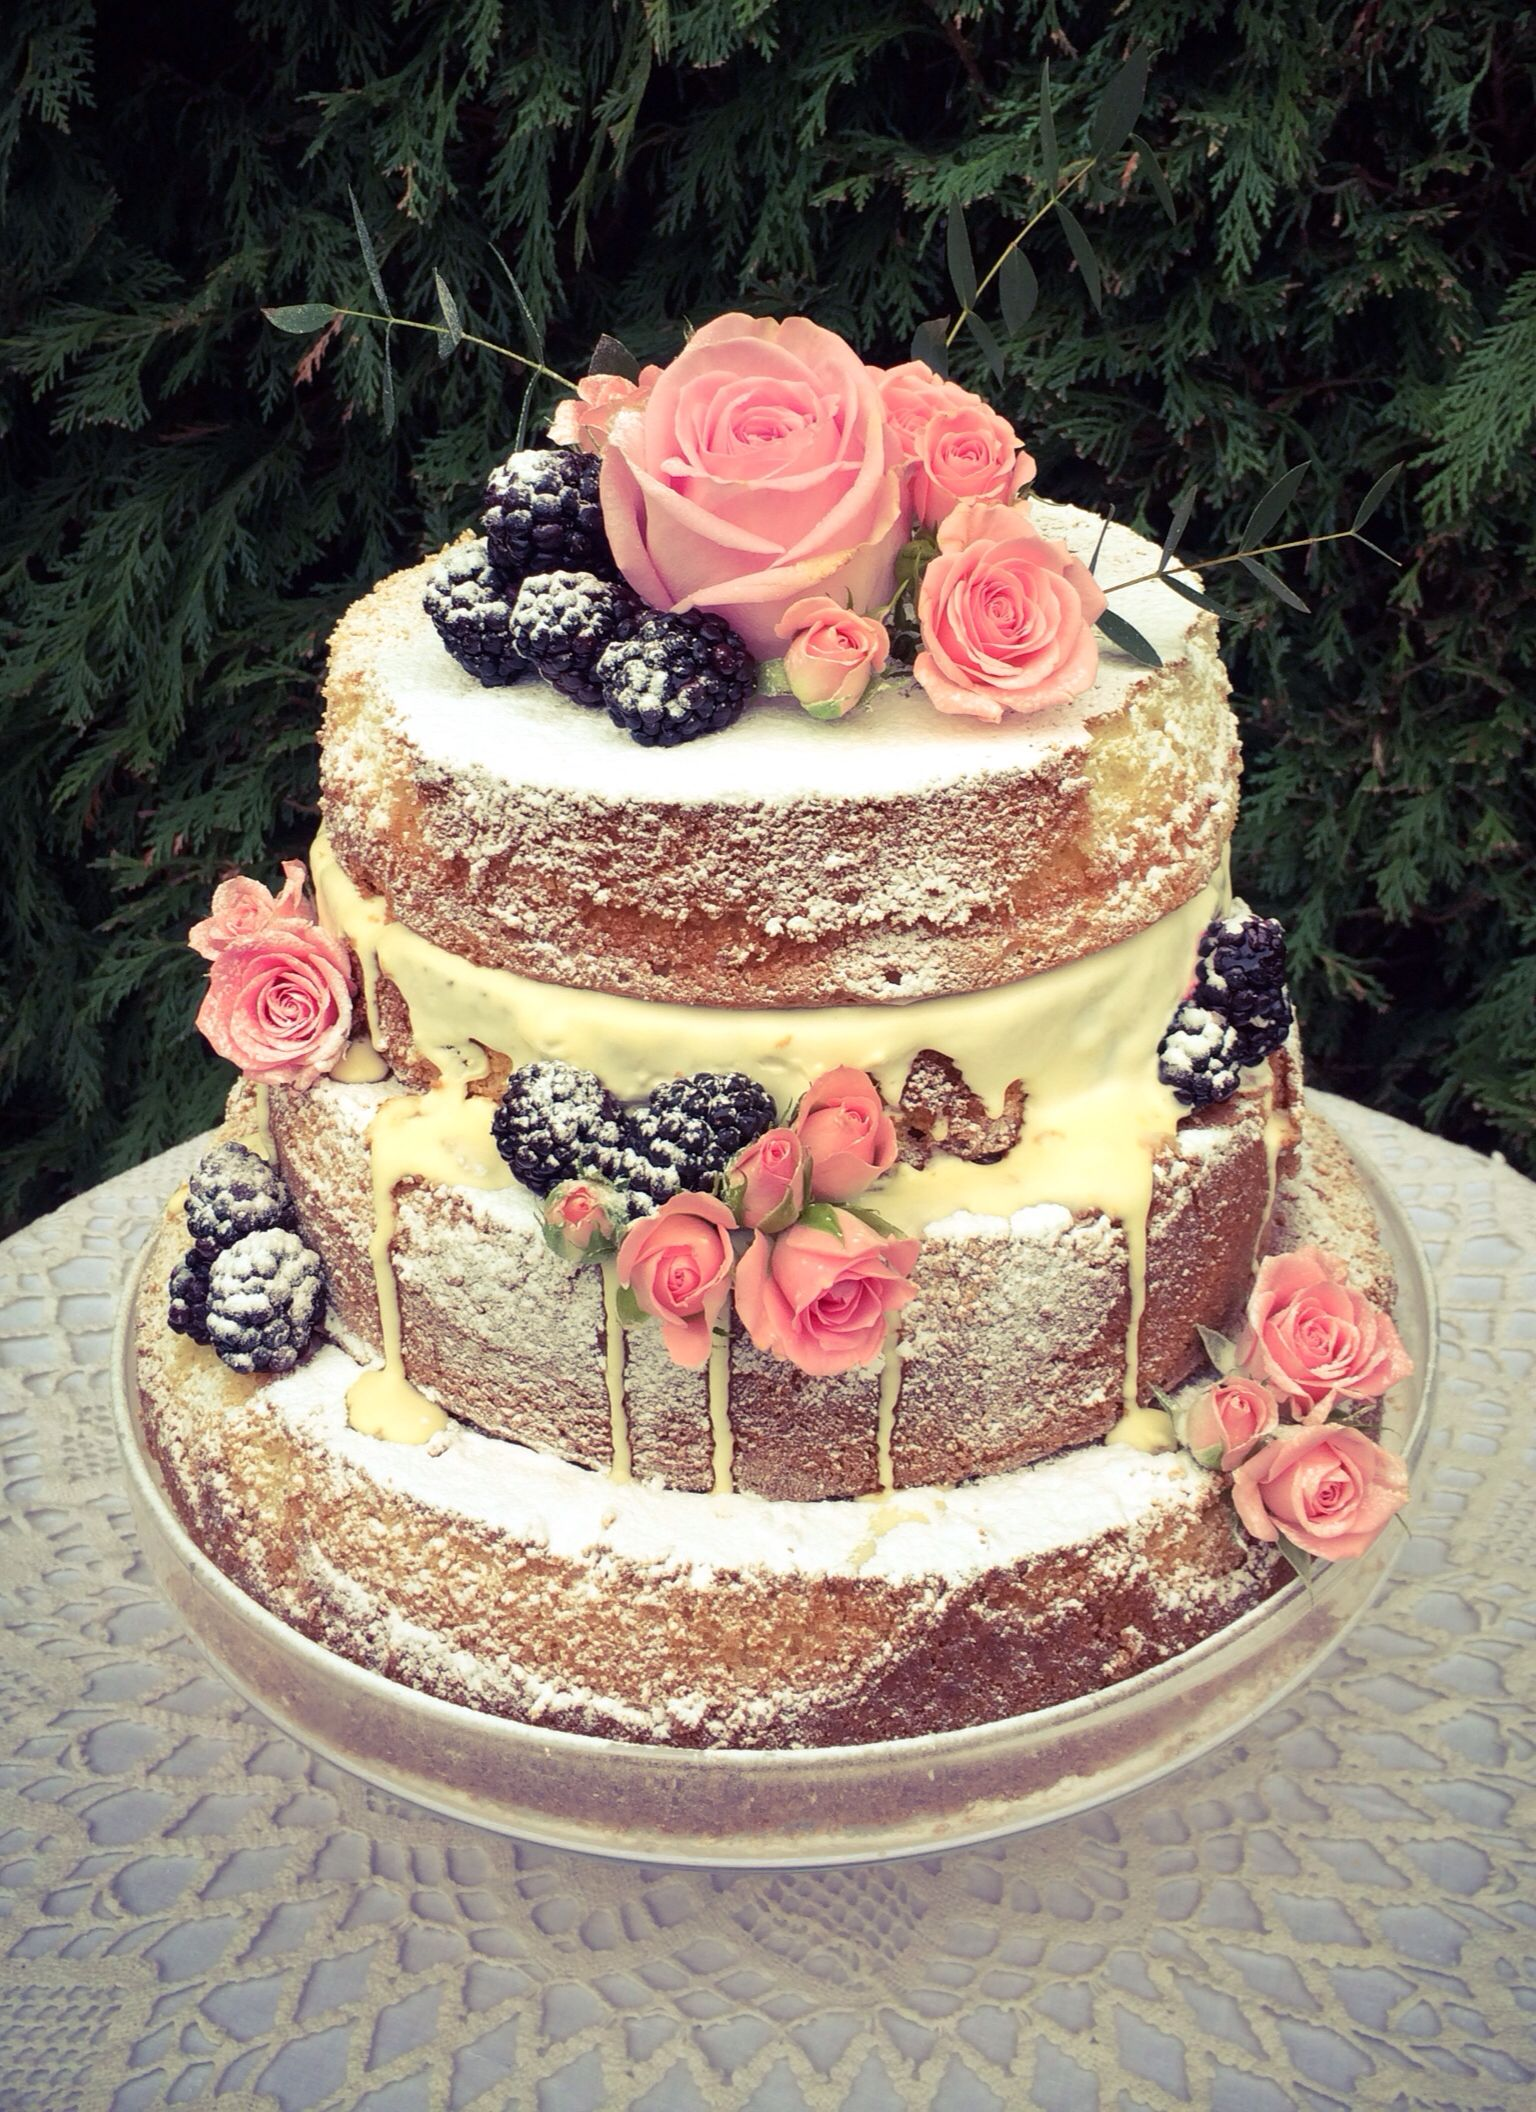 Naked wedding cake pink roses and blackberries wedding delicious